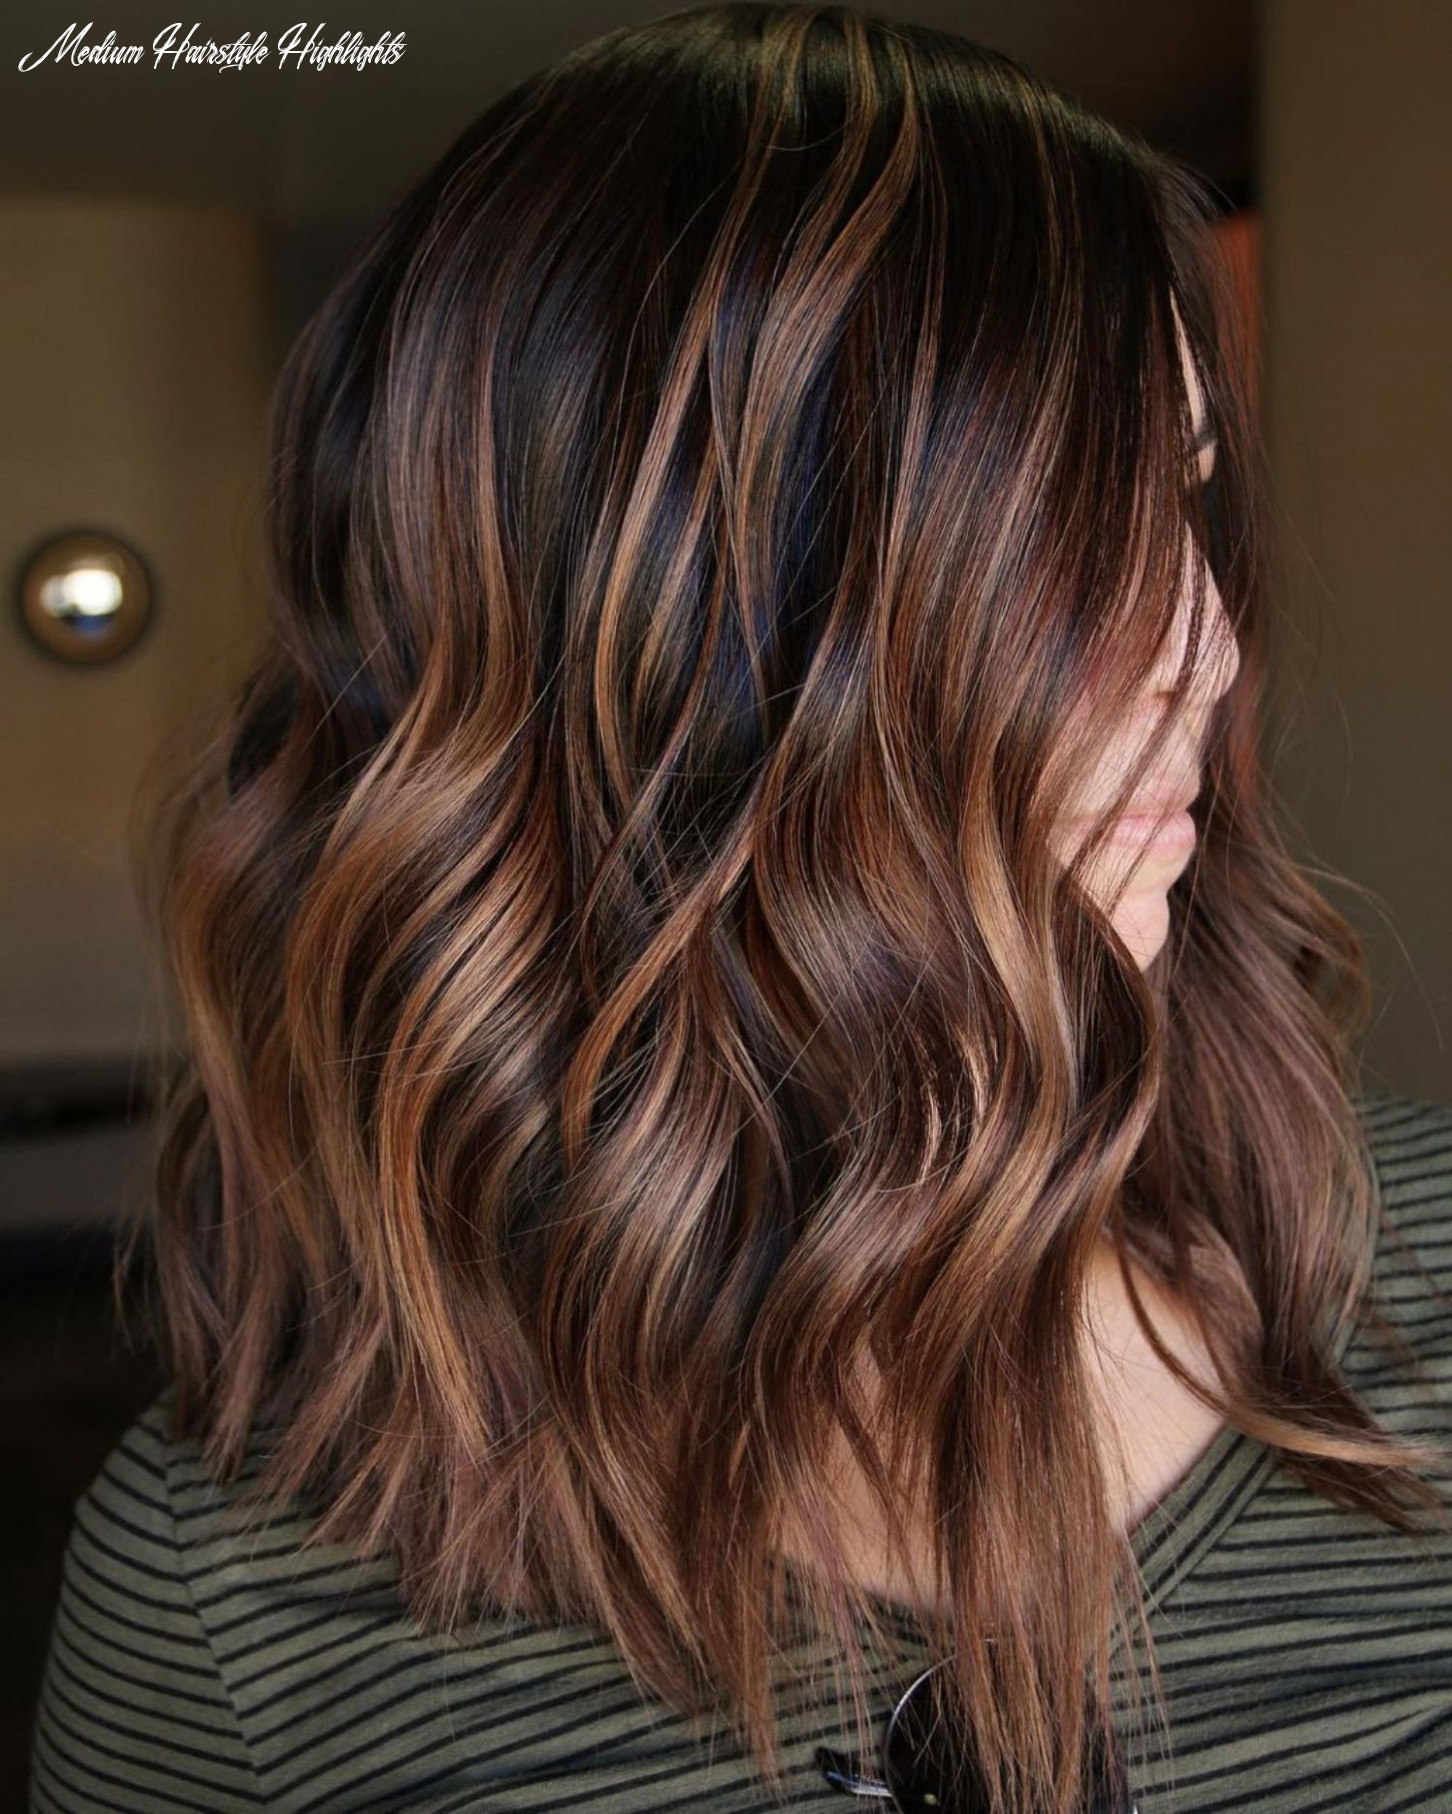 10 looks with caramel highlights on brown and dark brown hair